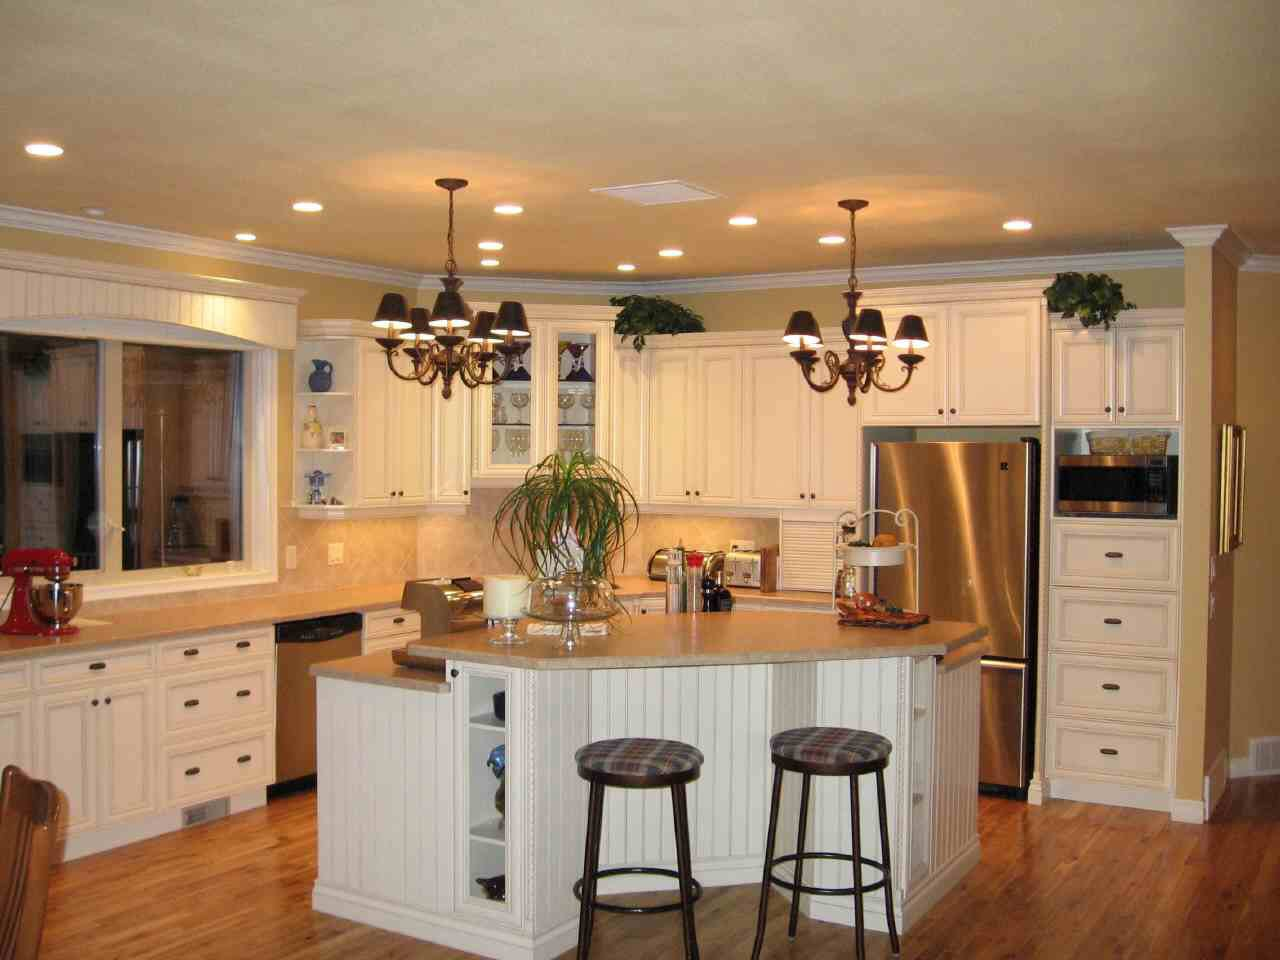 modish-white-kitchen-interior